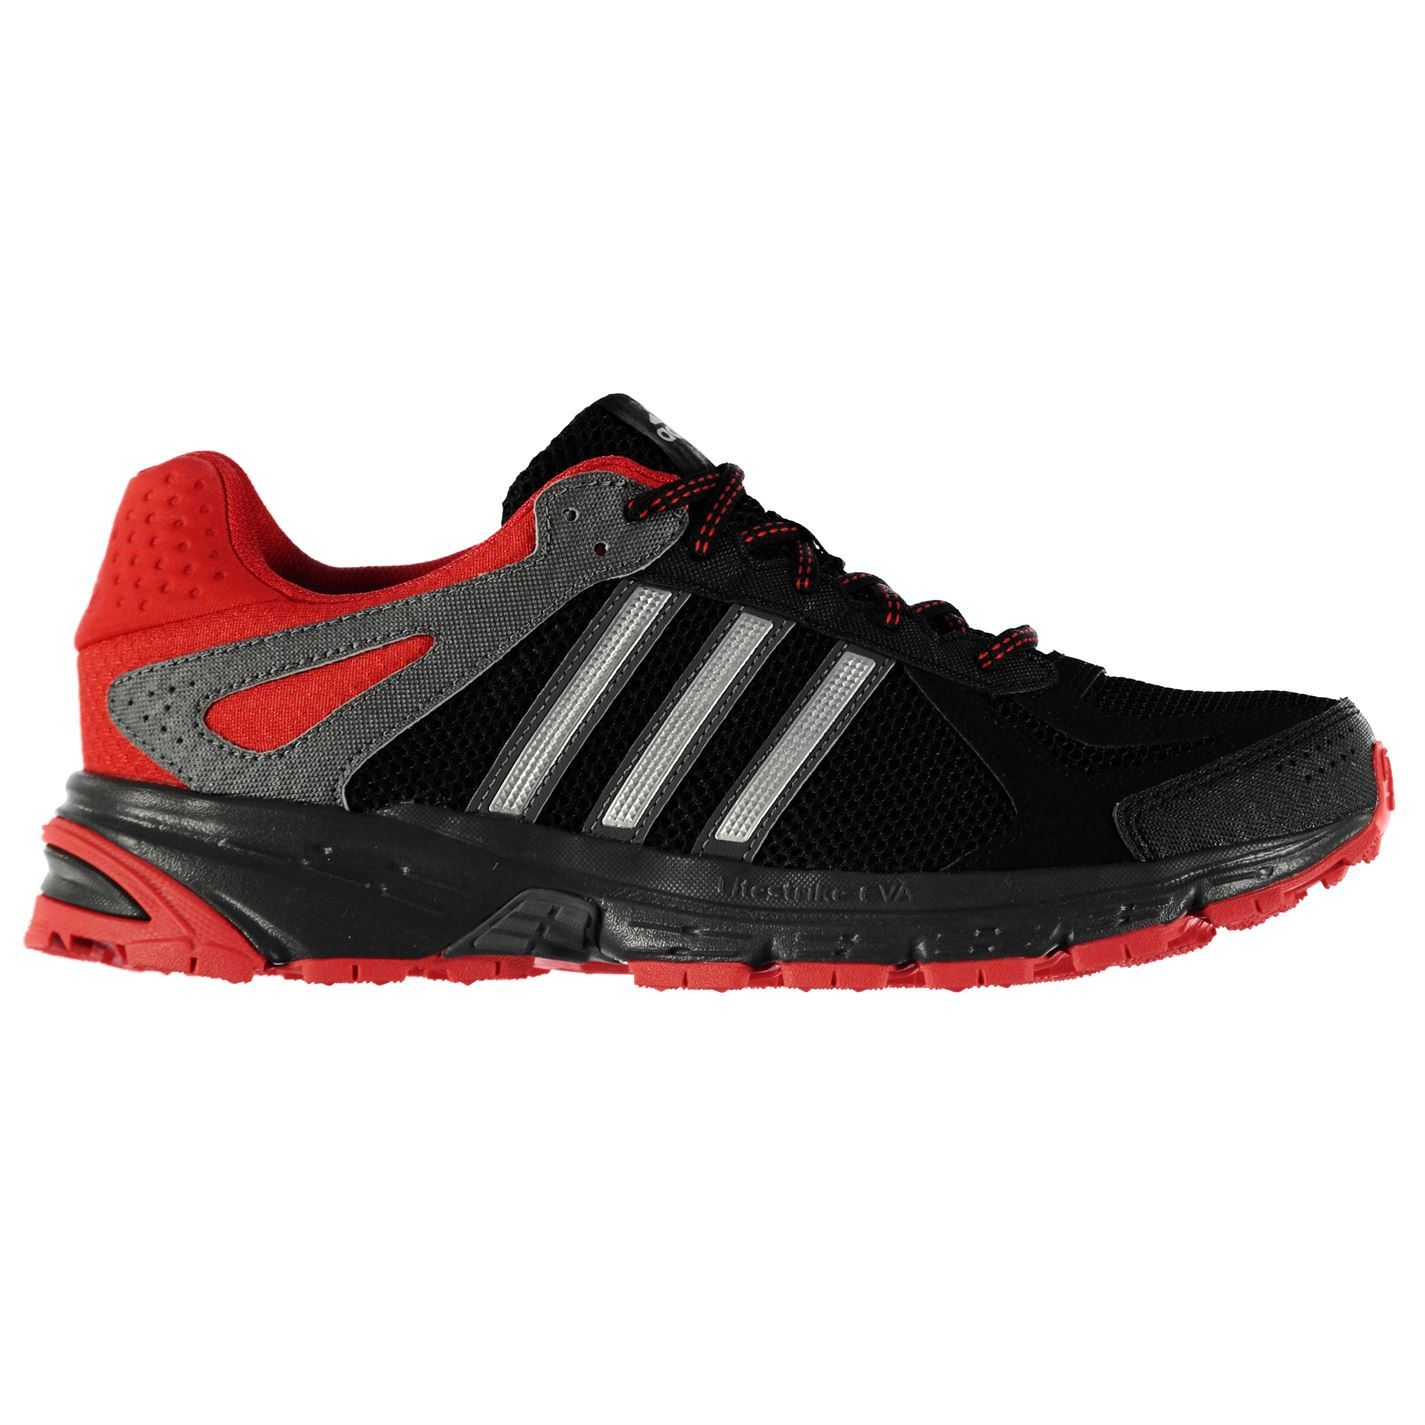 Mens Adidas Training Shoes Adiprene